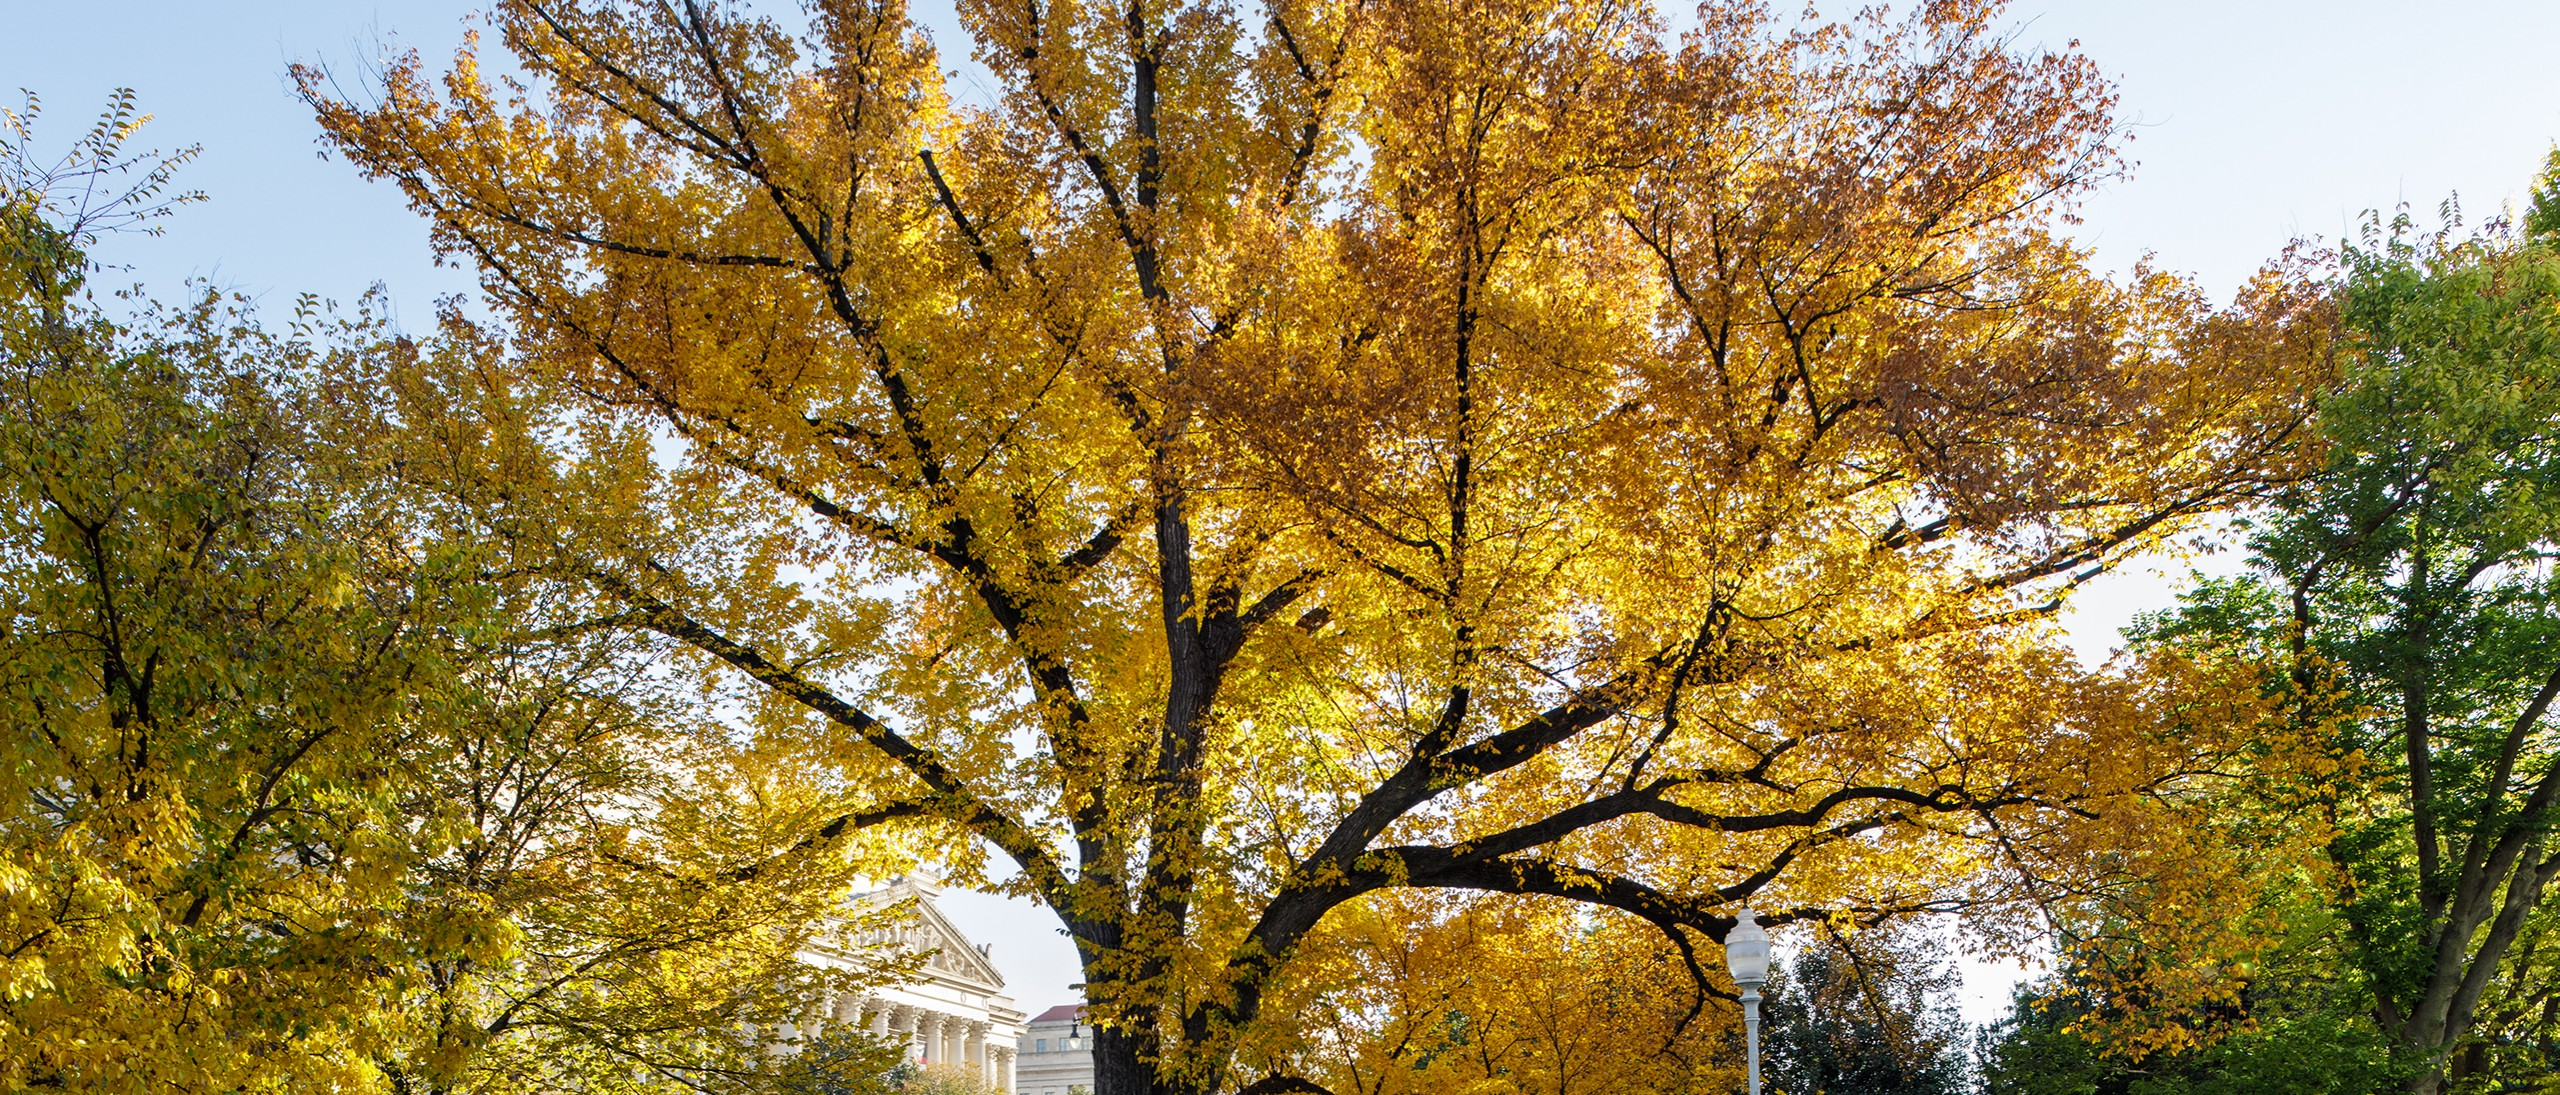 Elm number 1 in the fall